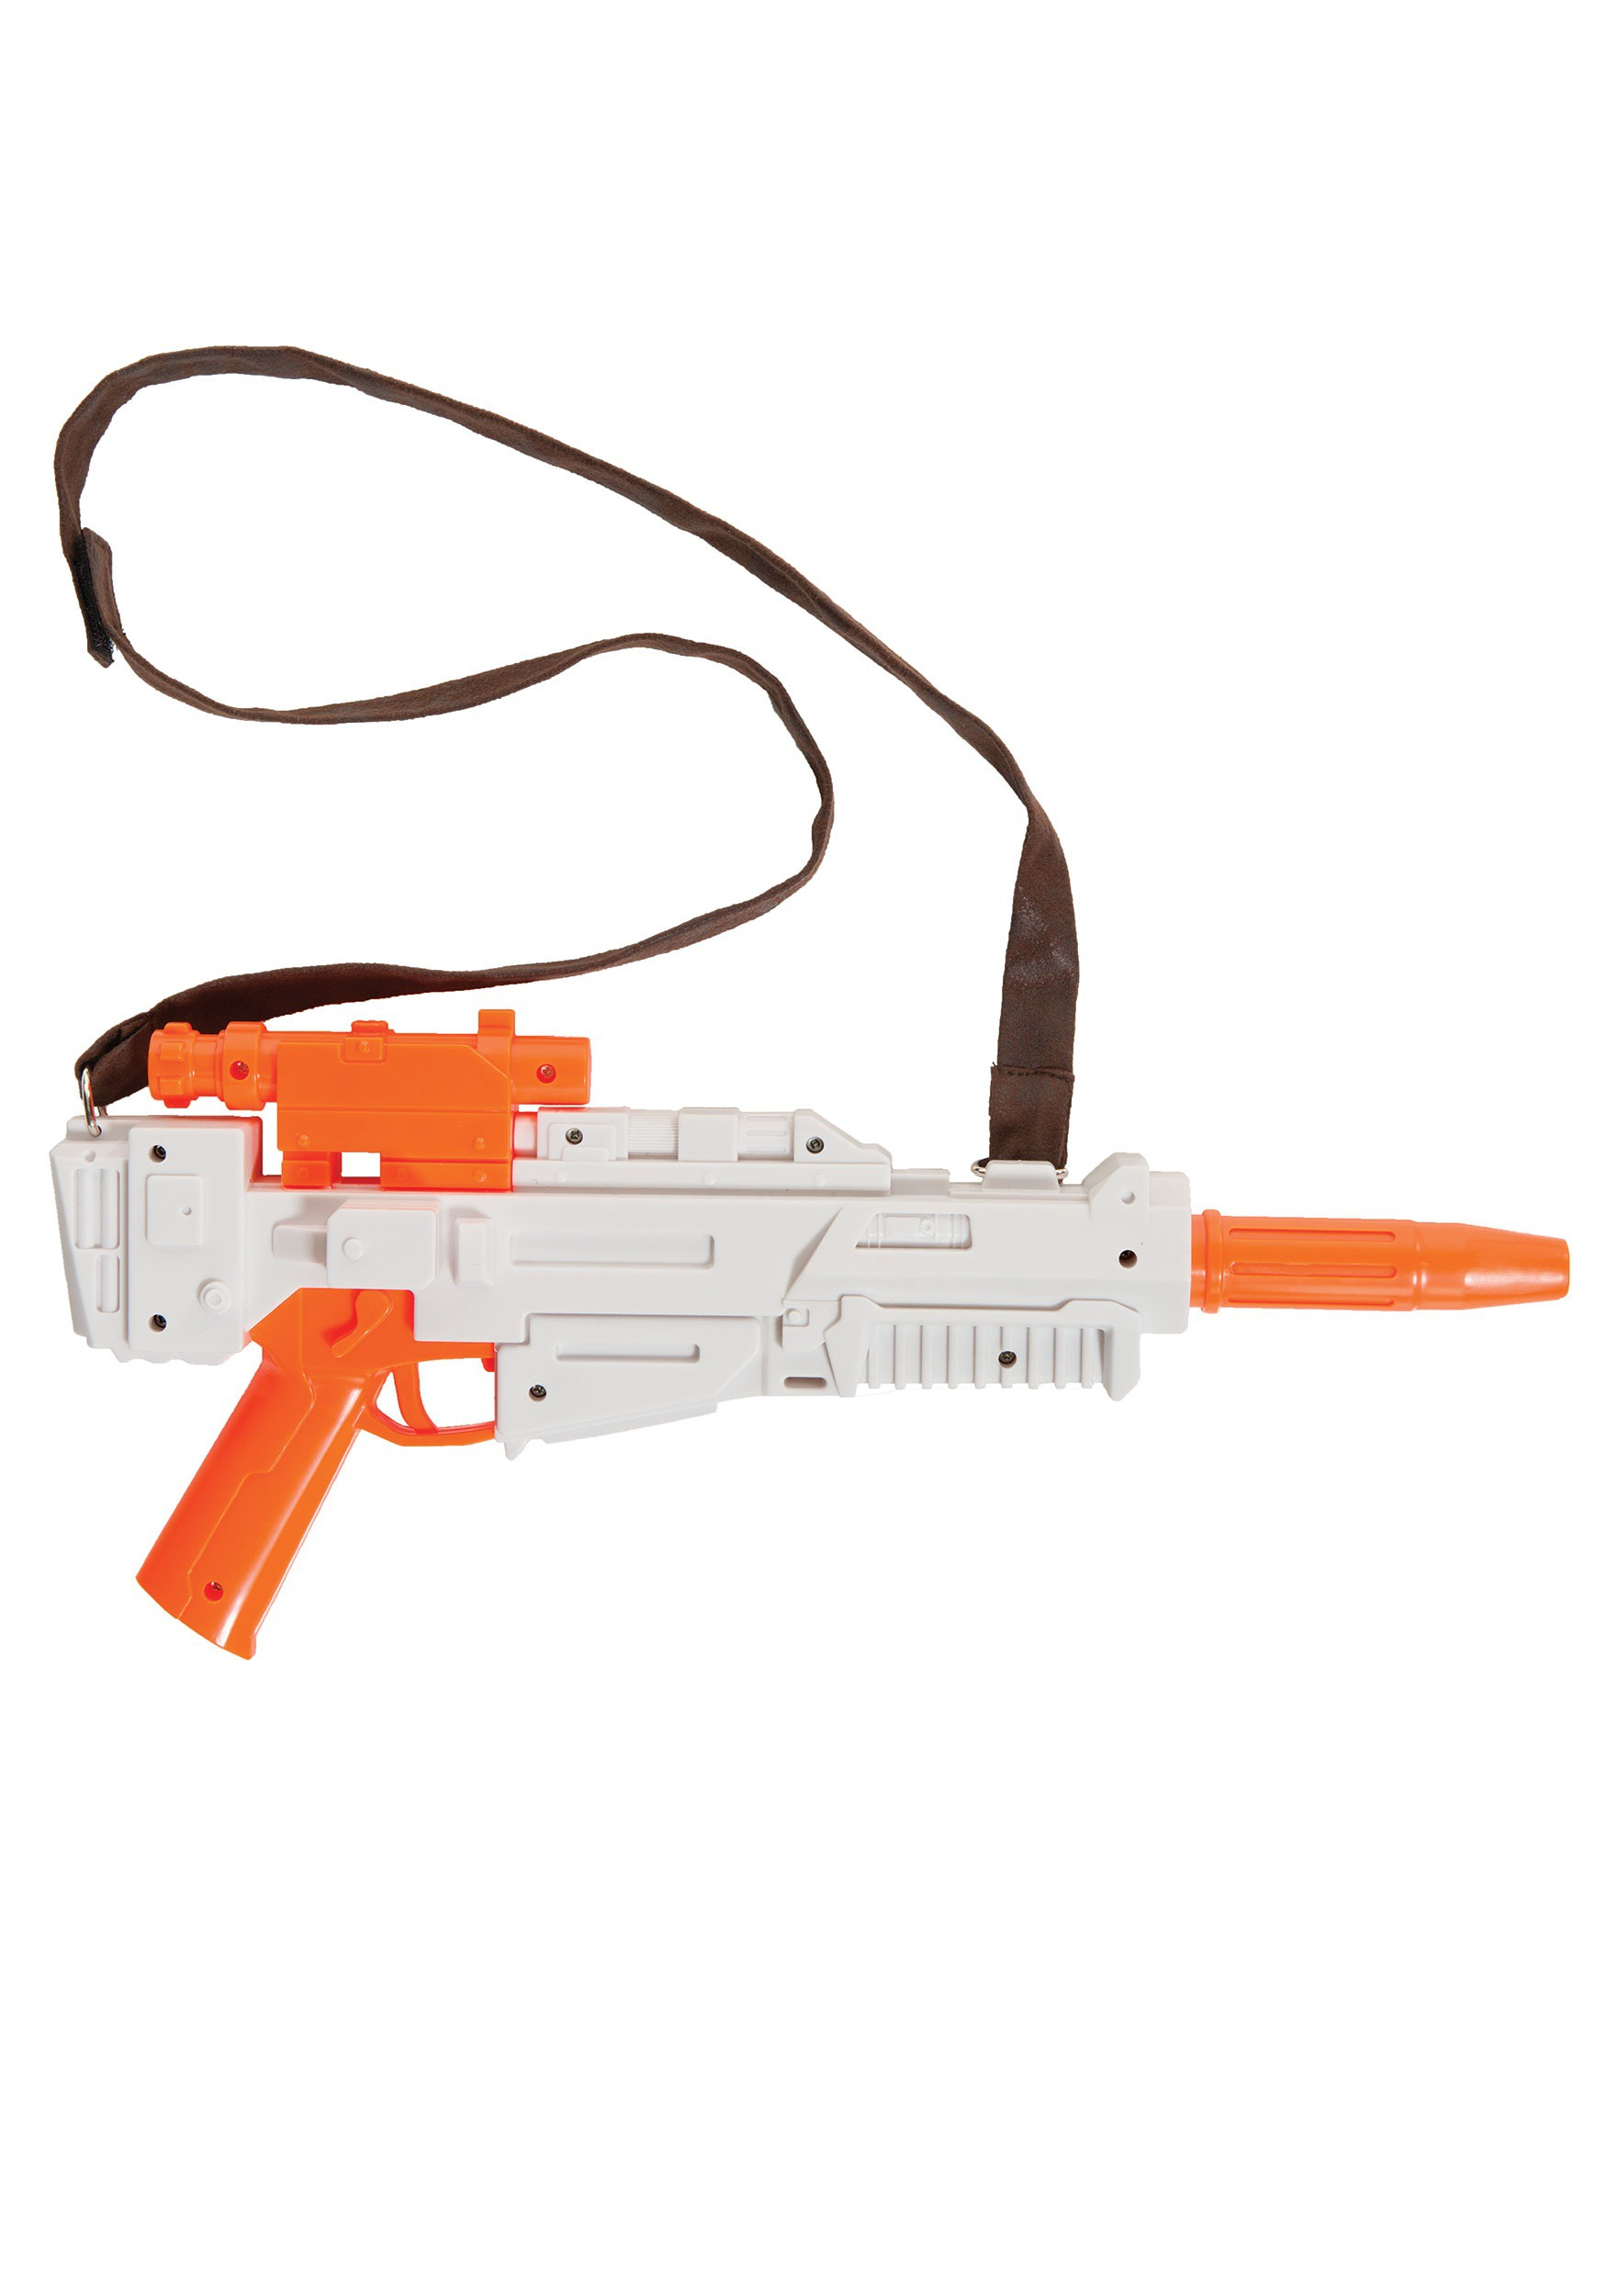 Star Wars The Force Awakens Finn Blaster Accessory RU32231